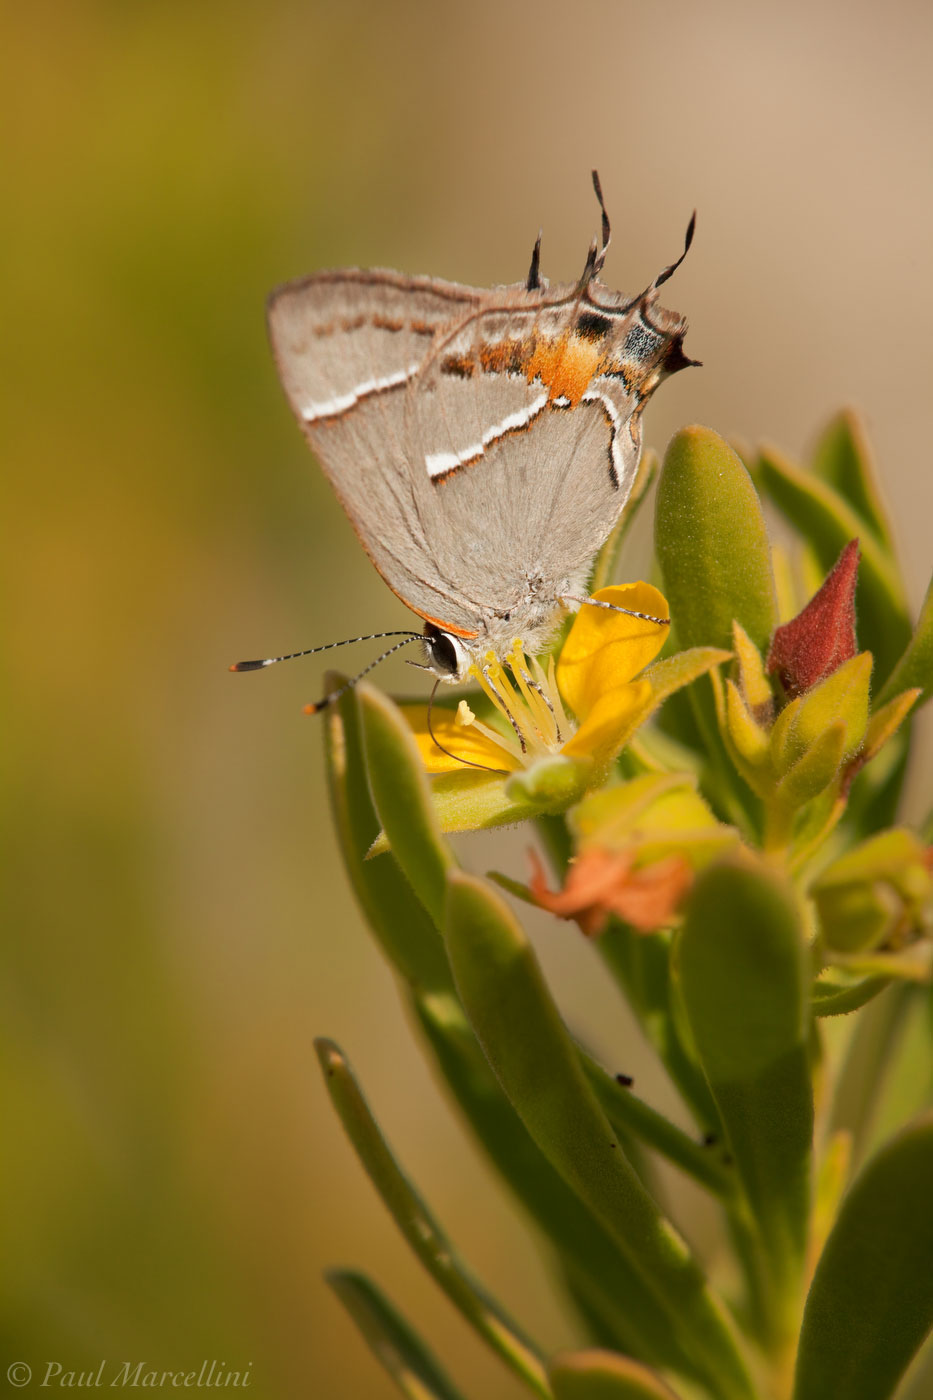 Strymon martialis, Martial Scrub Hairstreak, Suriana maritima, bay cedar, Key Deer National Wildlife Refuge, Big Pine Ke, photo